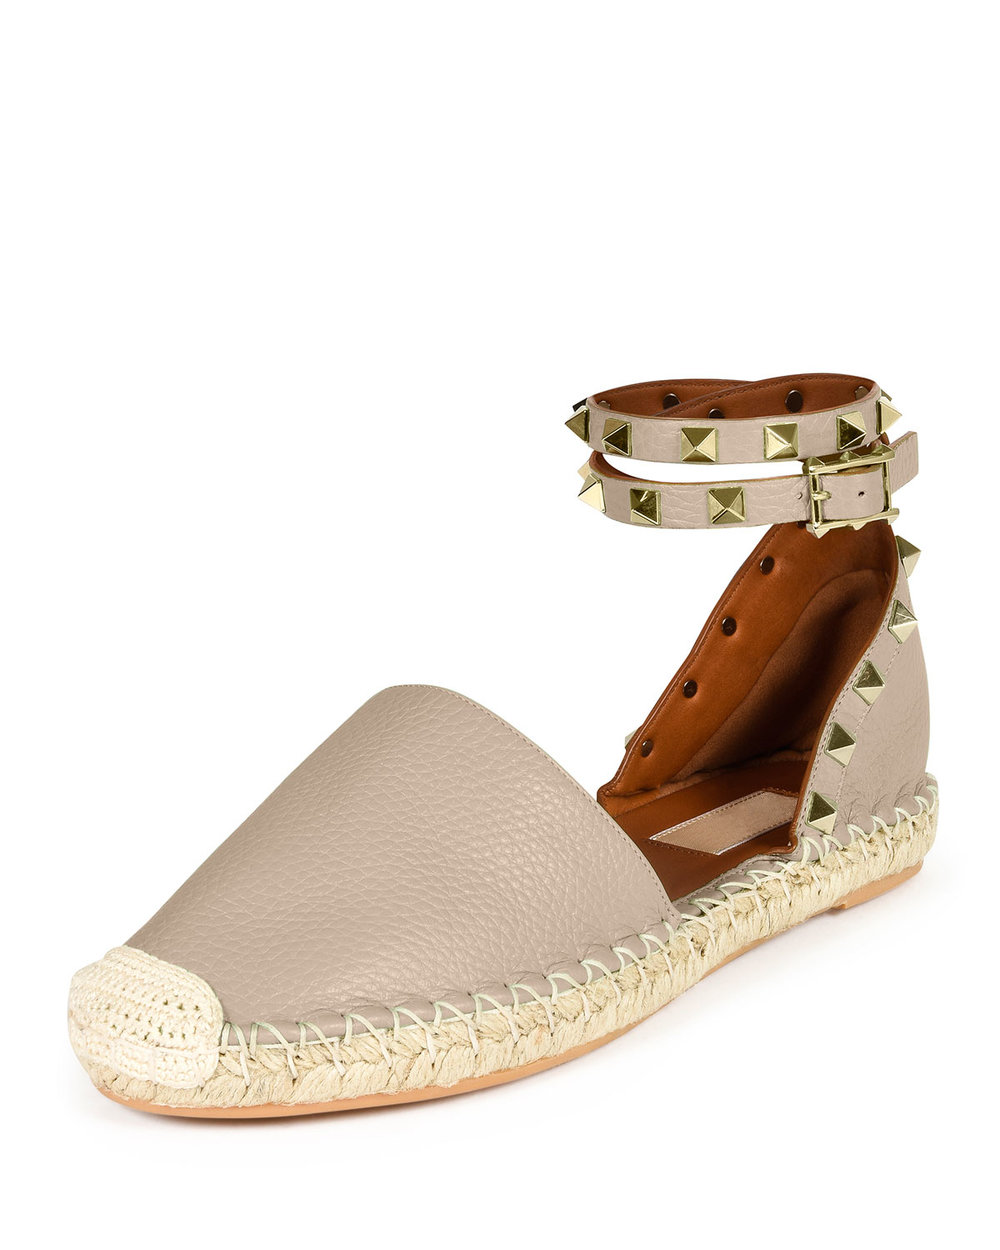 valentino-skinlt-cuir-rockstud-leather-ankle-wrap-espadrille-product-2-925889758-normal.jpeg